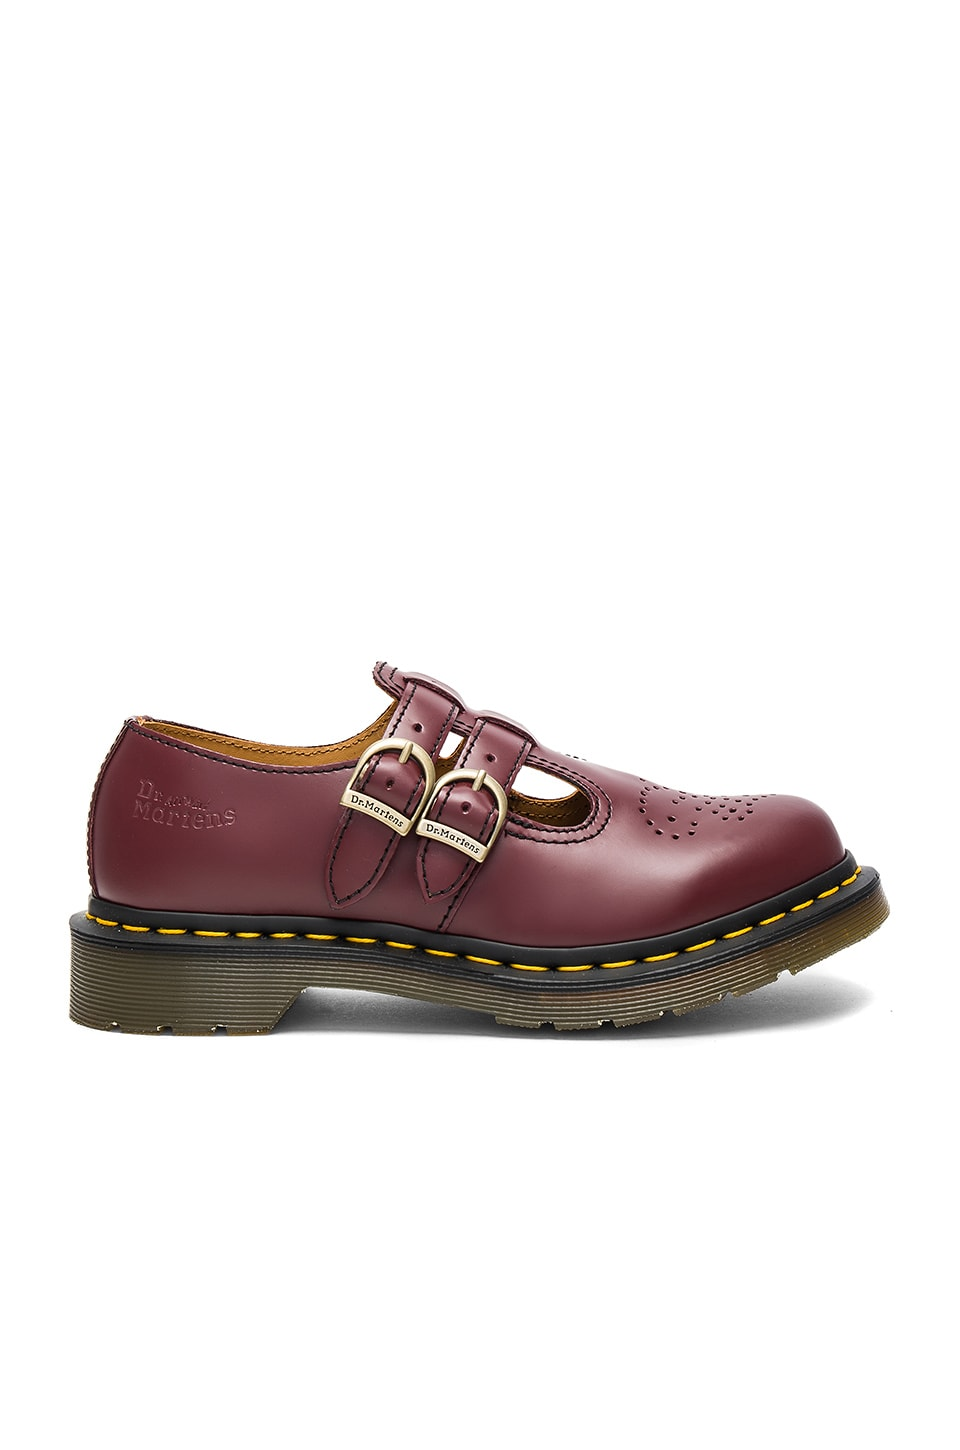 Dr. Martens Mary Jane Flats in Cherry Red